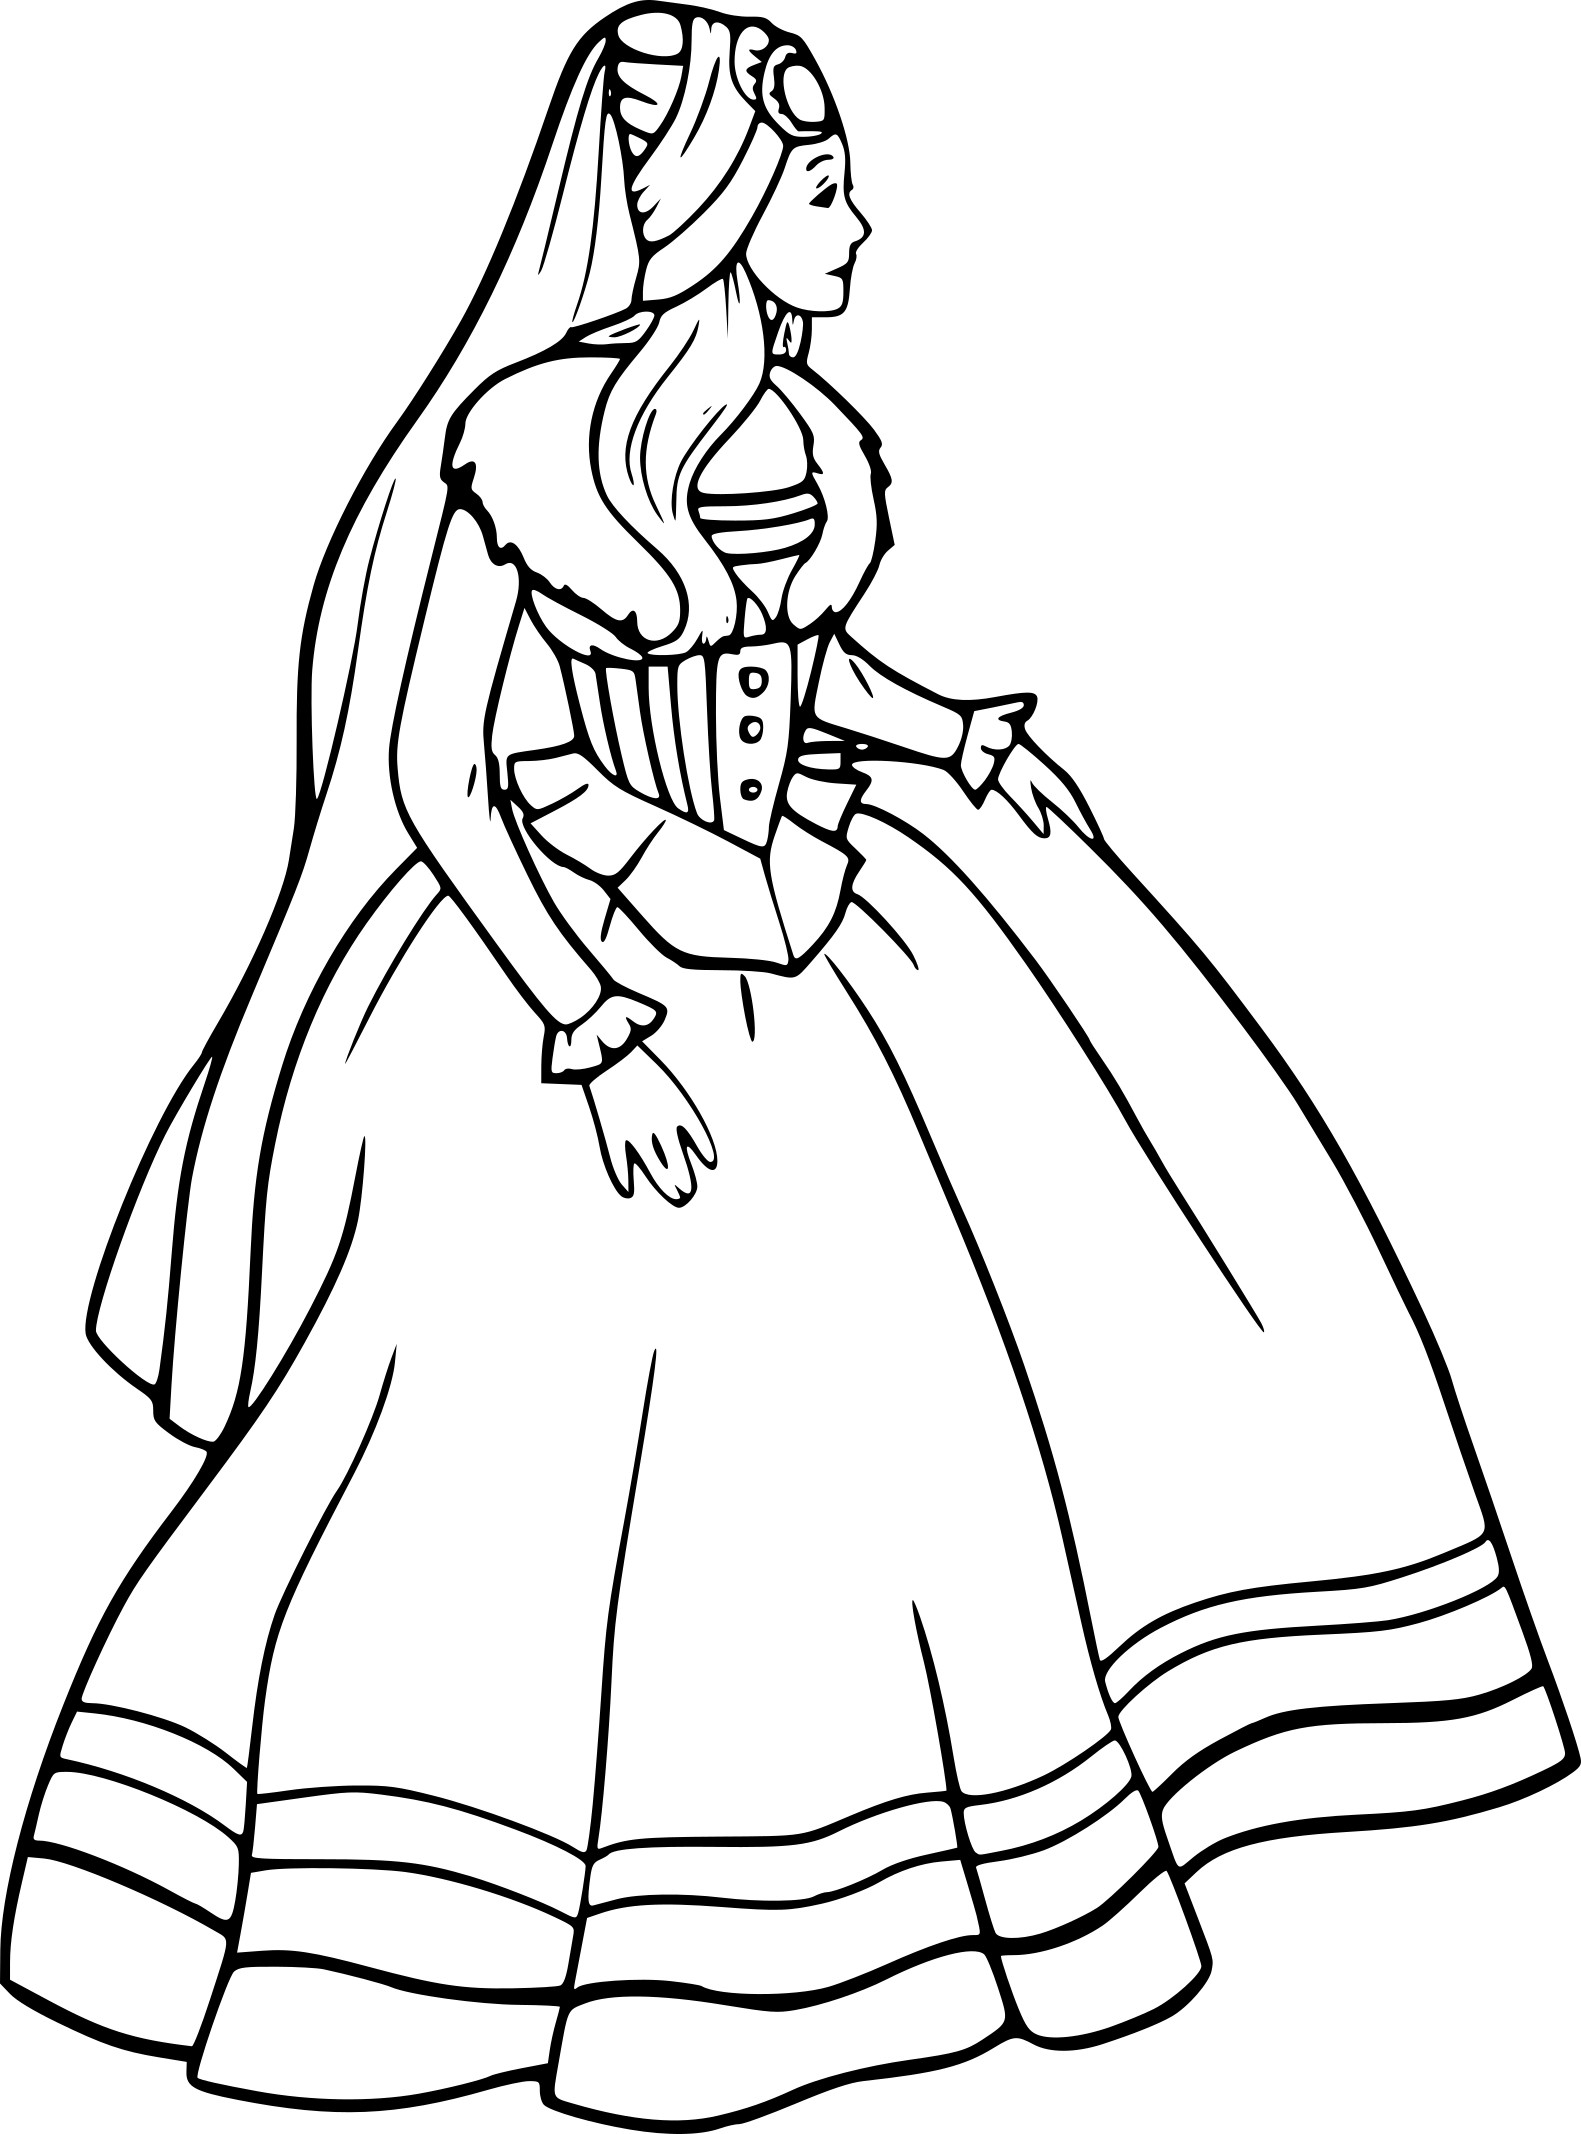 Coloriage barbie princesse dessin imprimer sur - Barbie princesse coloriage ...